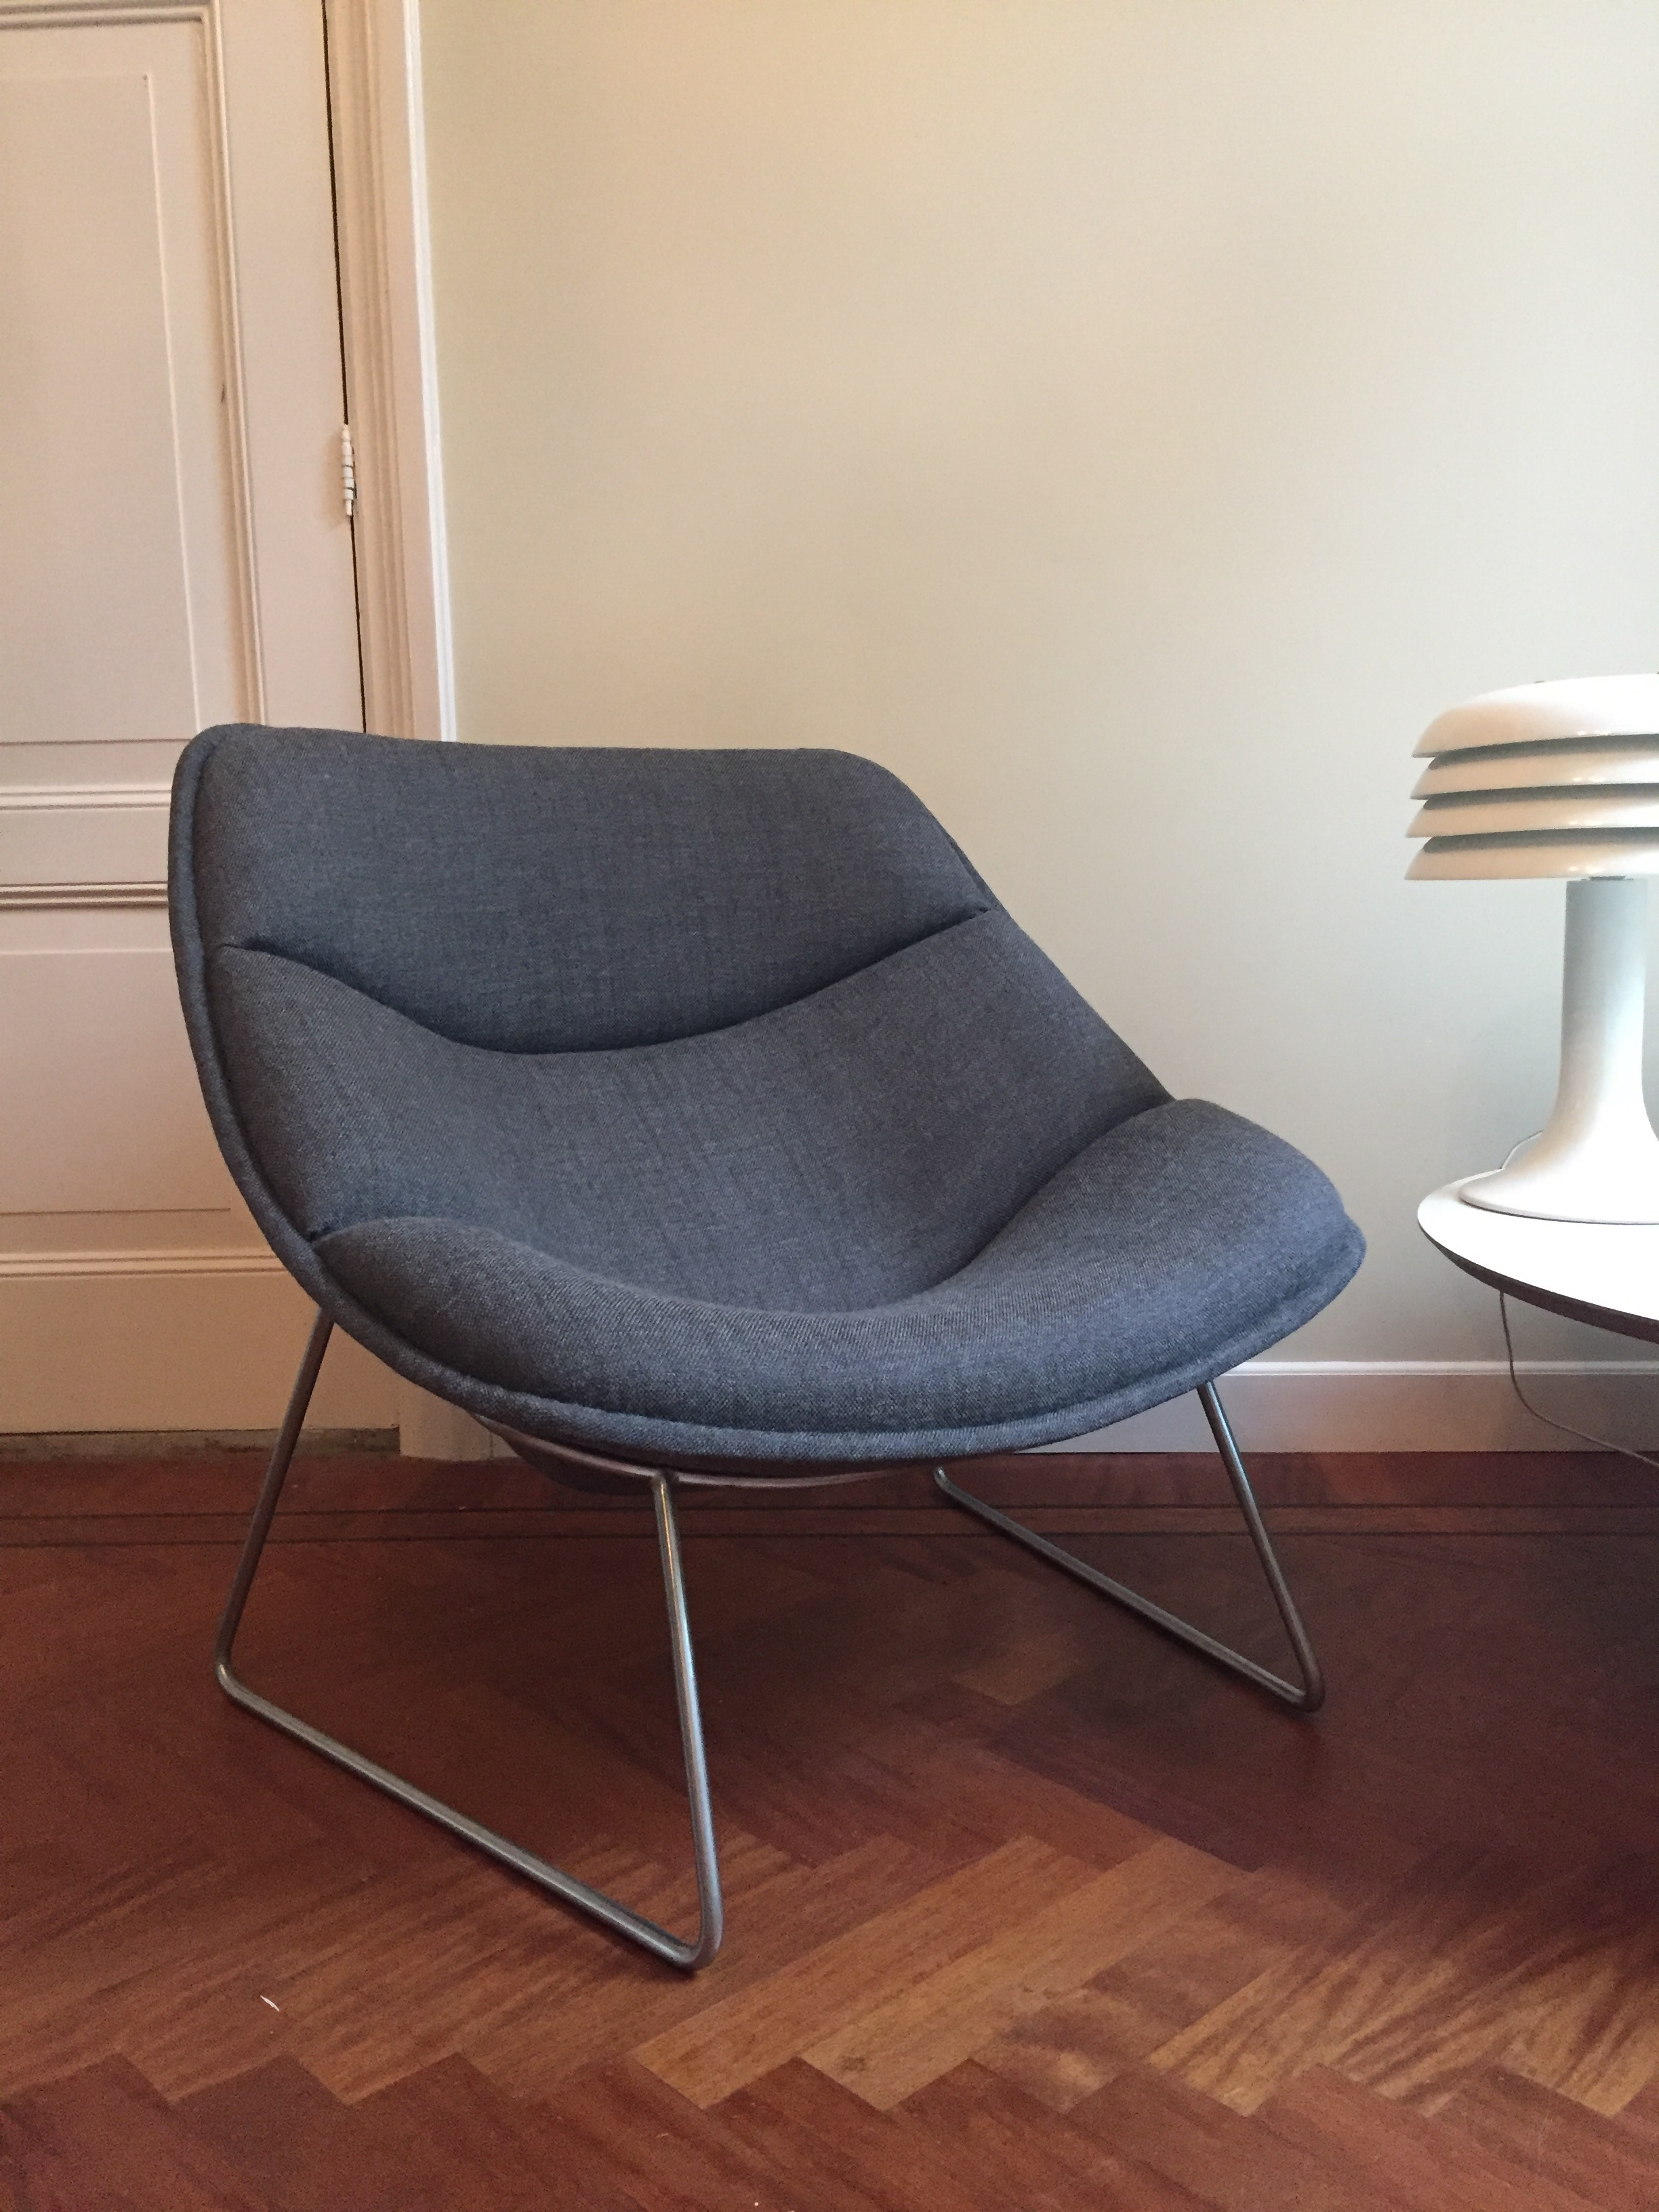 Artifort F558 Chair, designed by Pierre Paulin